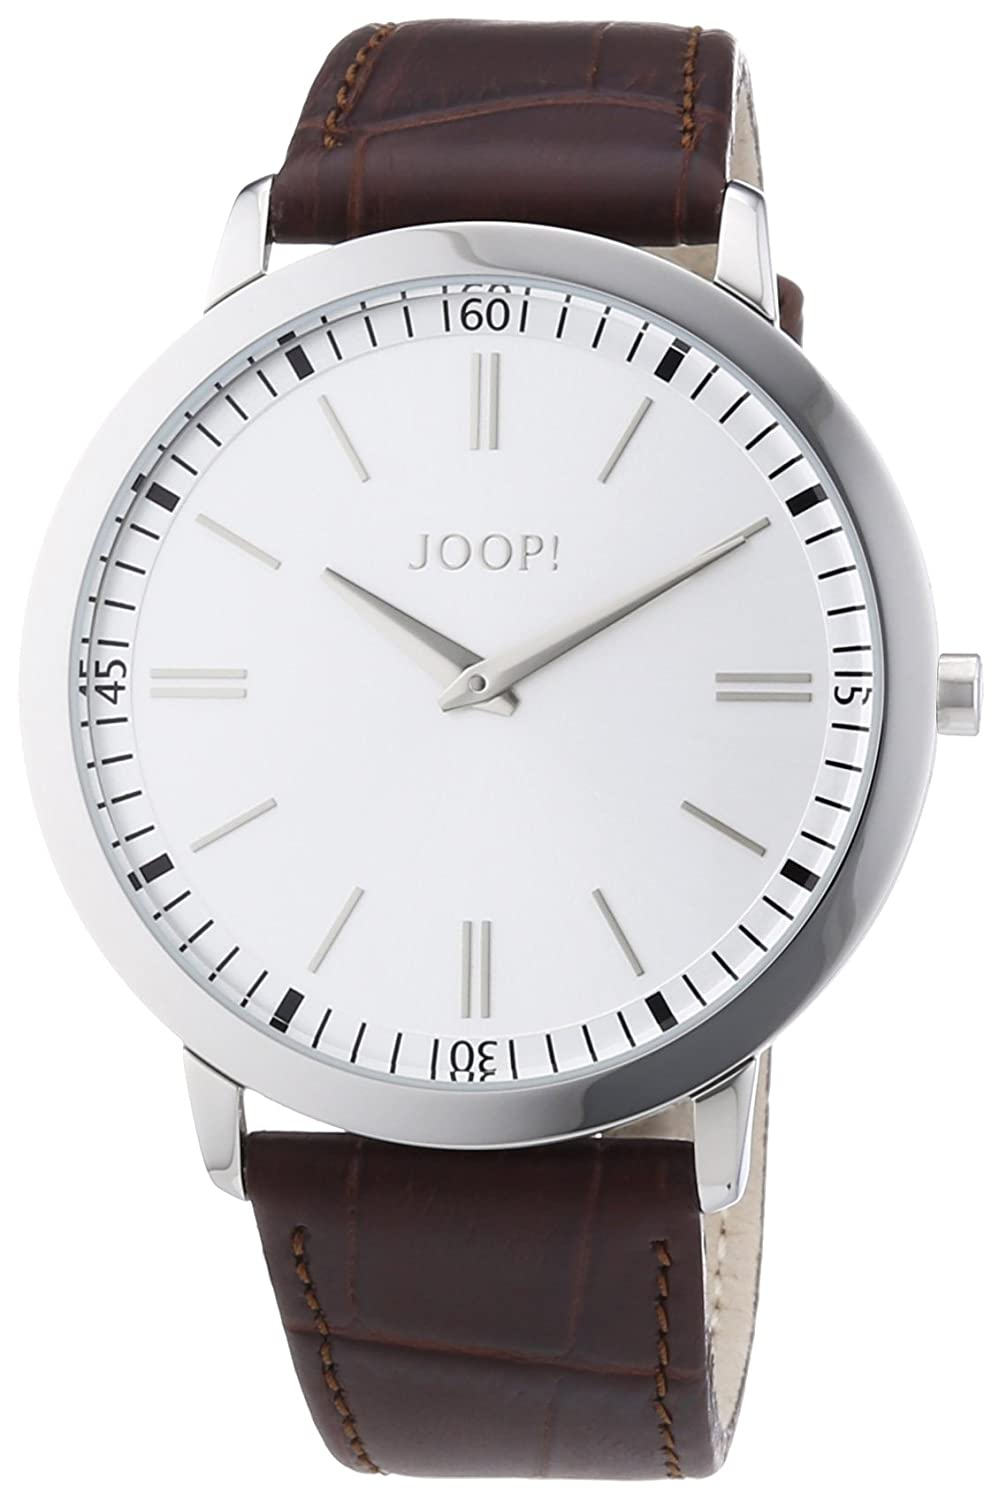 Joop Herren-Armbanduhr XL Tendencies Analog Quarz Leder JP100691F02